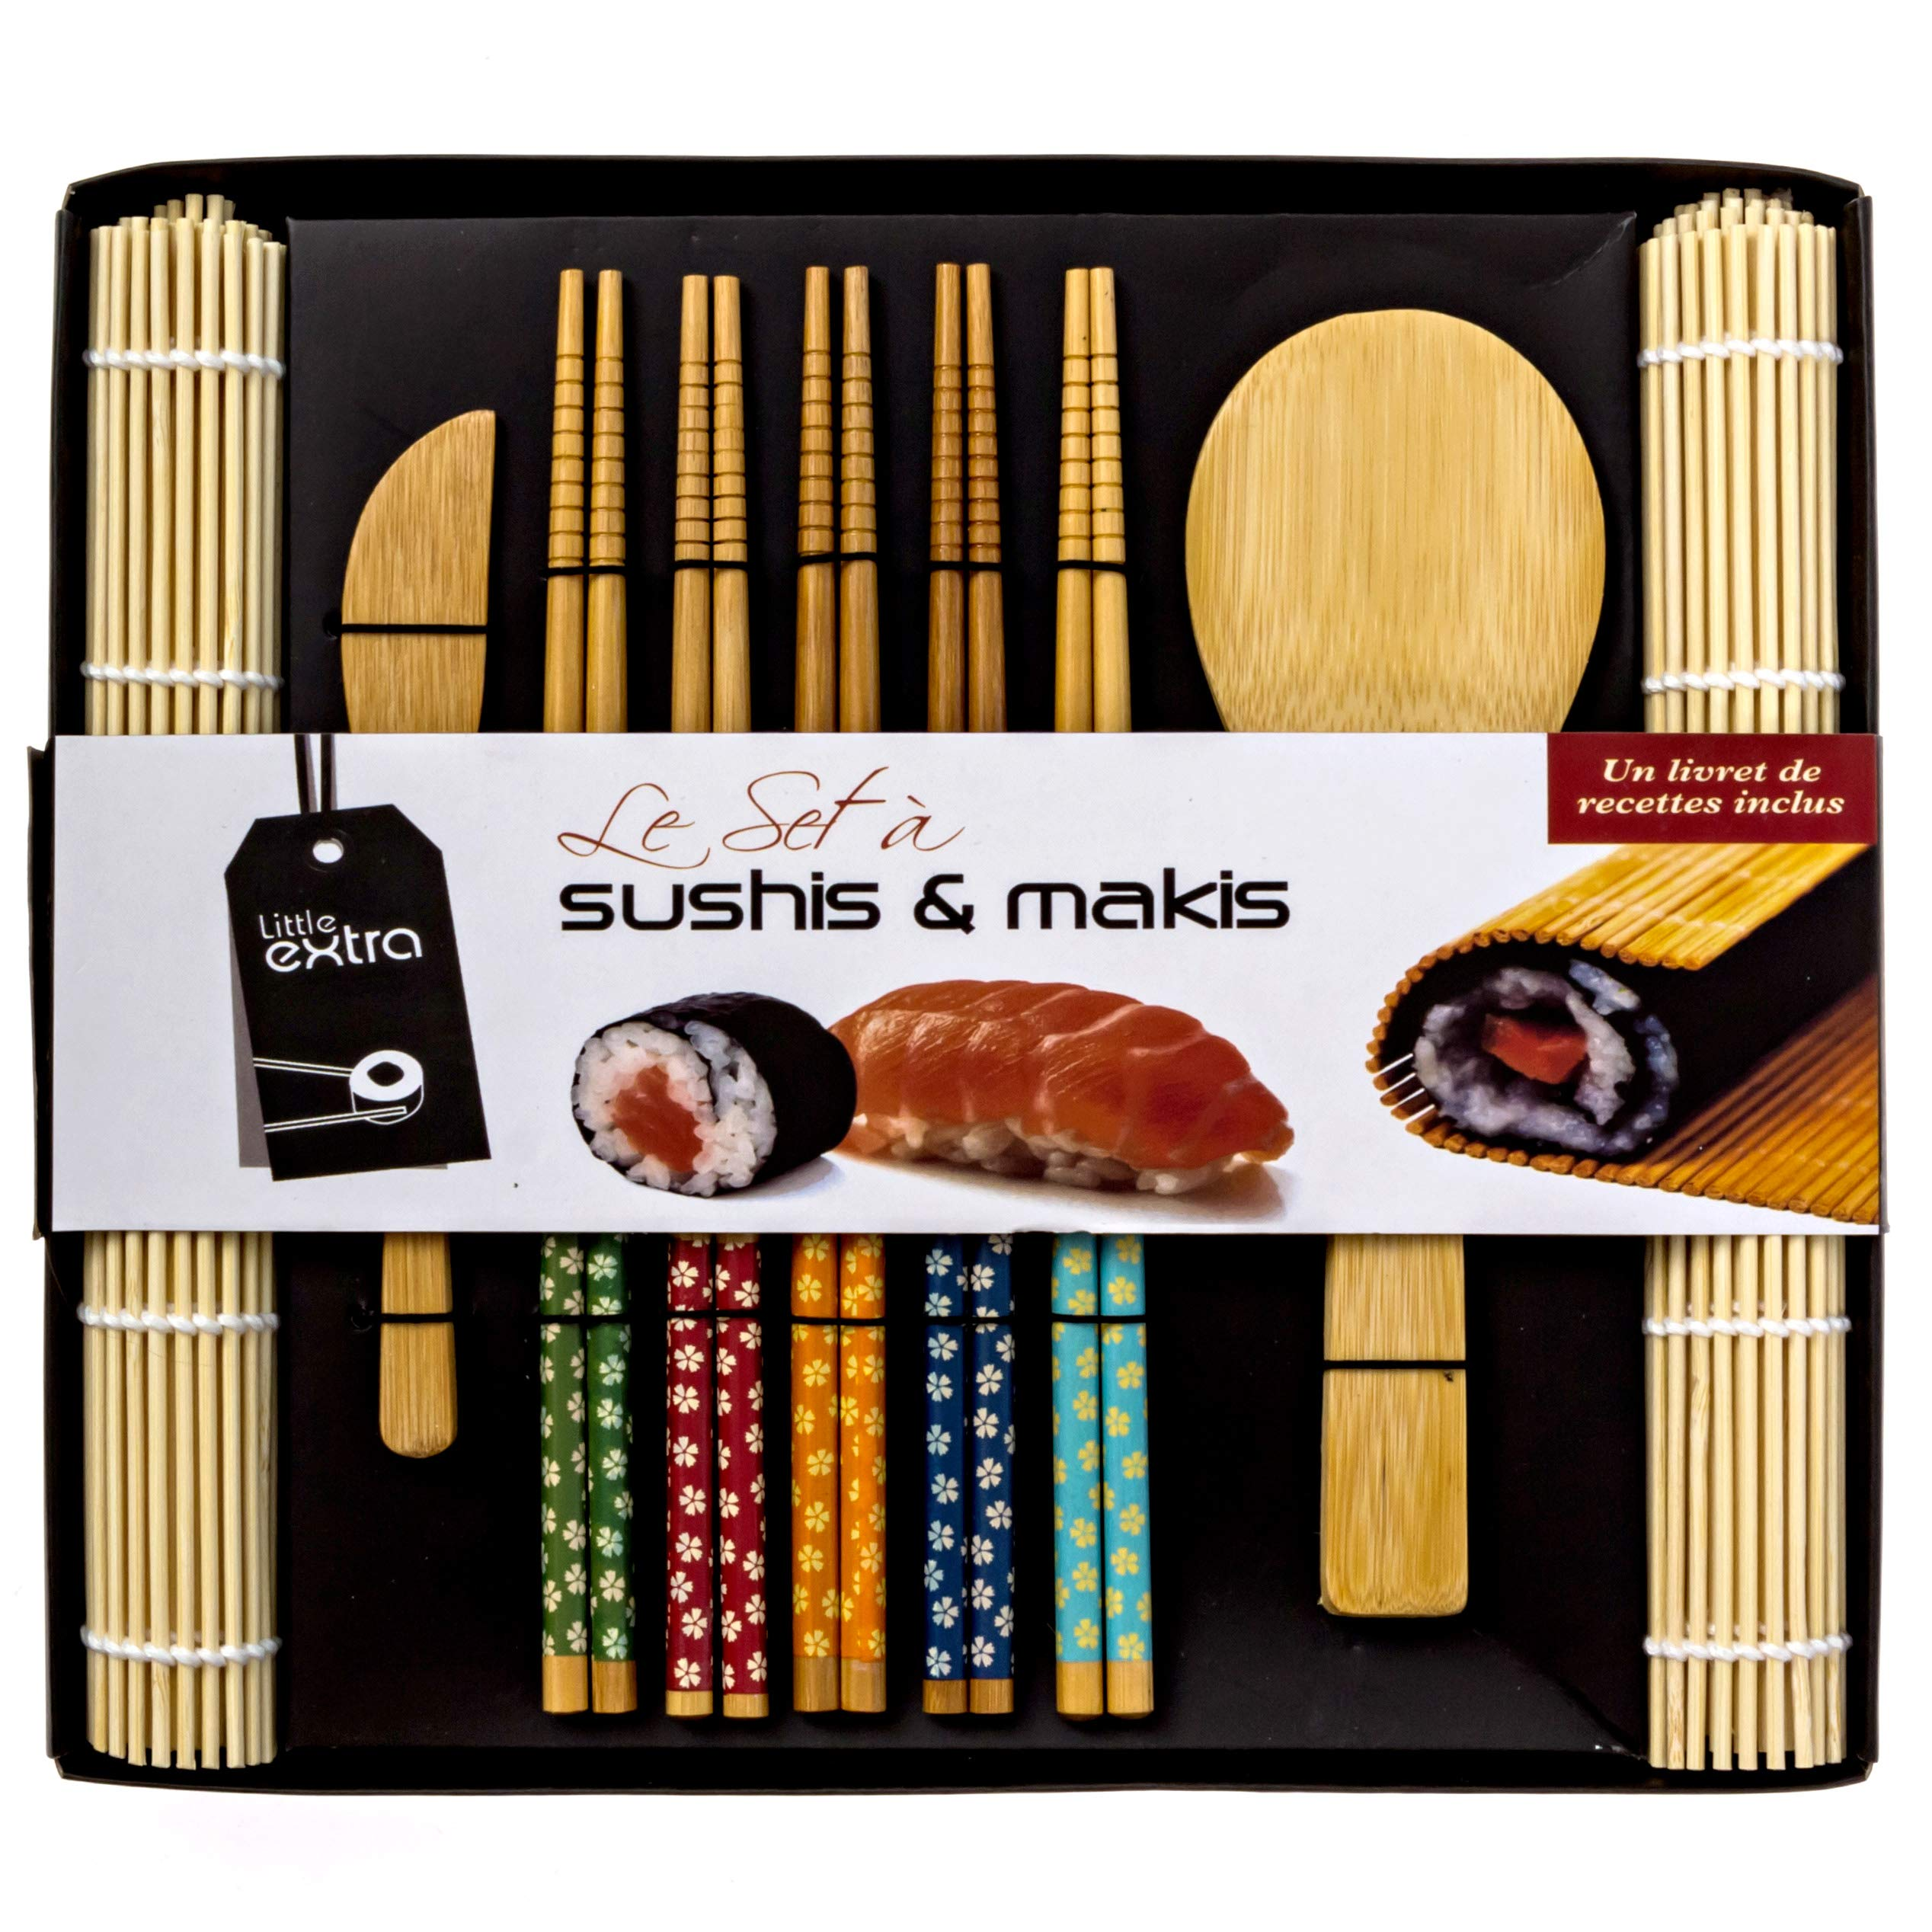 Soeos Beginner Sushi Making Kit, Bamboo Sushi Kit,Included 2 Rolling Mats - 5 Pairs Chopsticks - Paddle - Spreader by Soeos